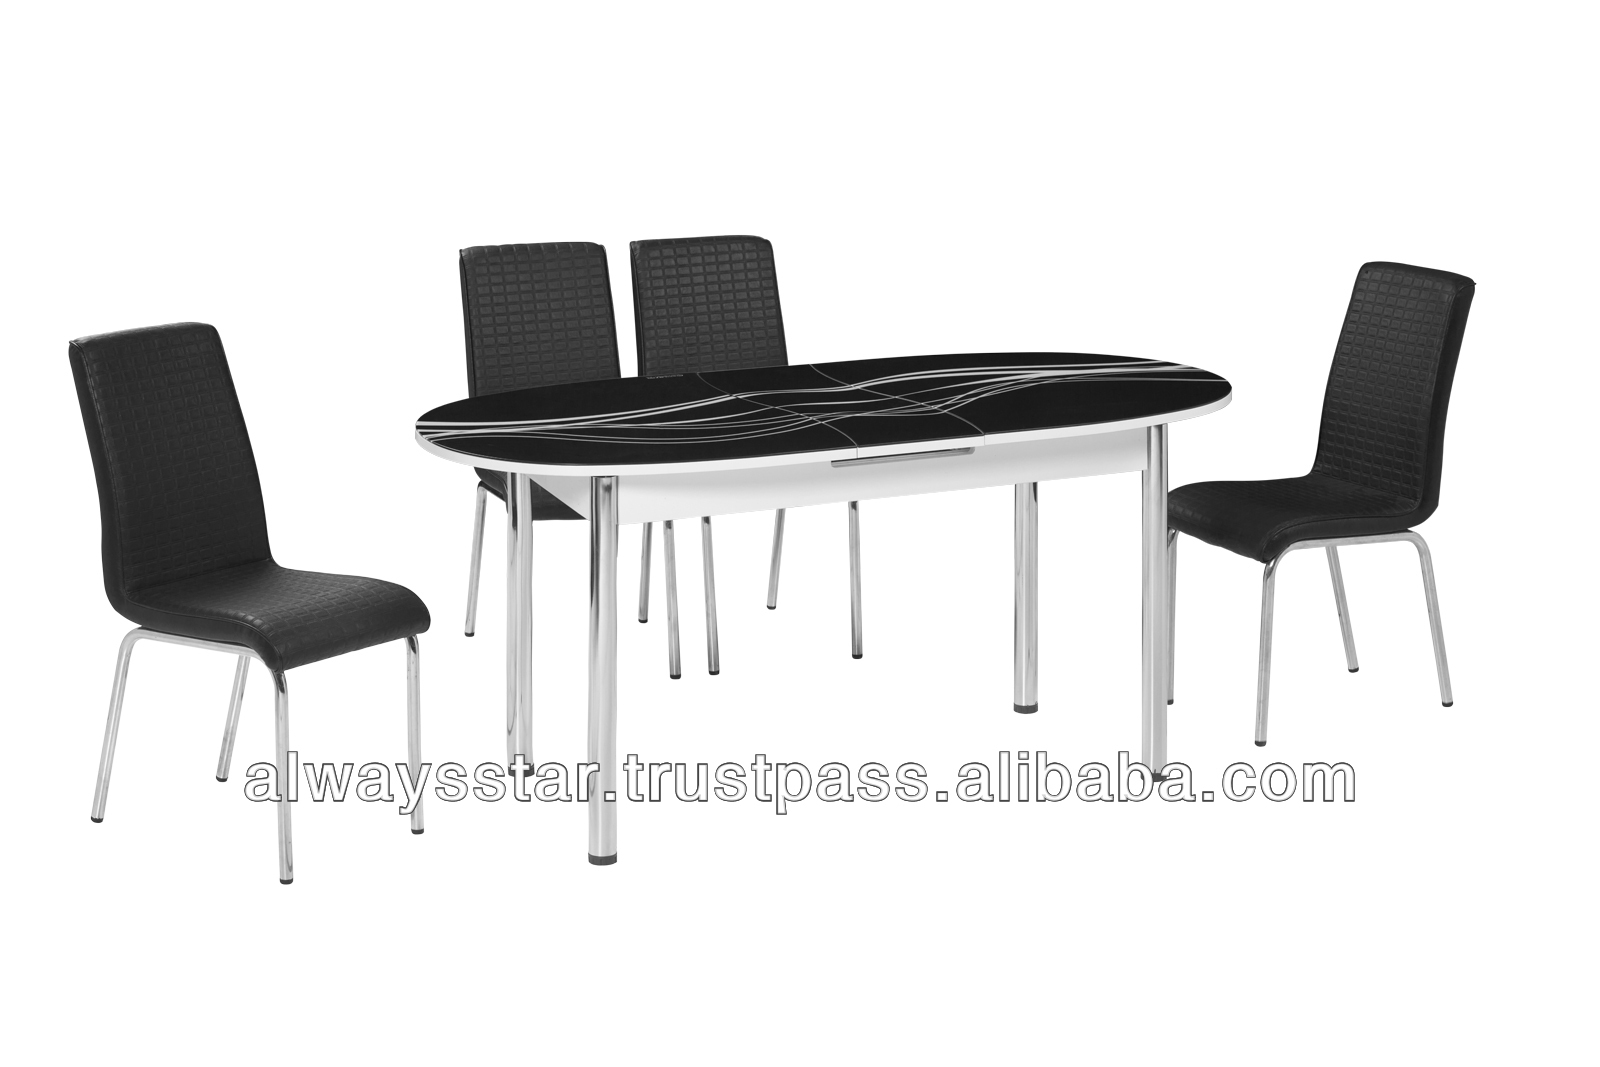 M 18 Uzatlabilir eliptik oval Siyah Yemek odas seti  : M 18 Extendable elliptical oval Black Dining from turkish.alibaba.com size 1600 x 1067 jpeg 255kB